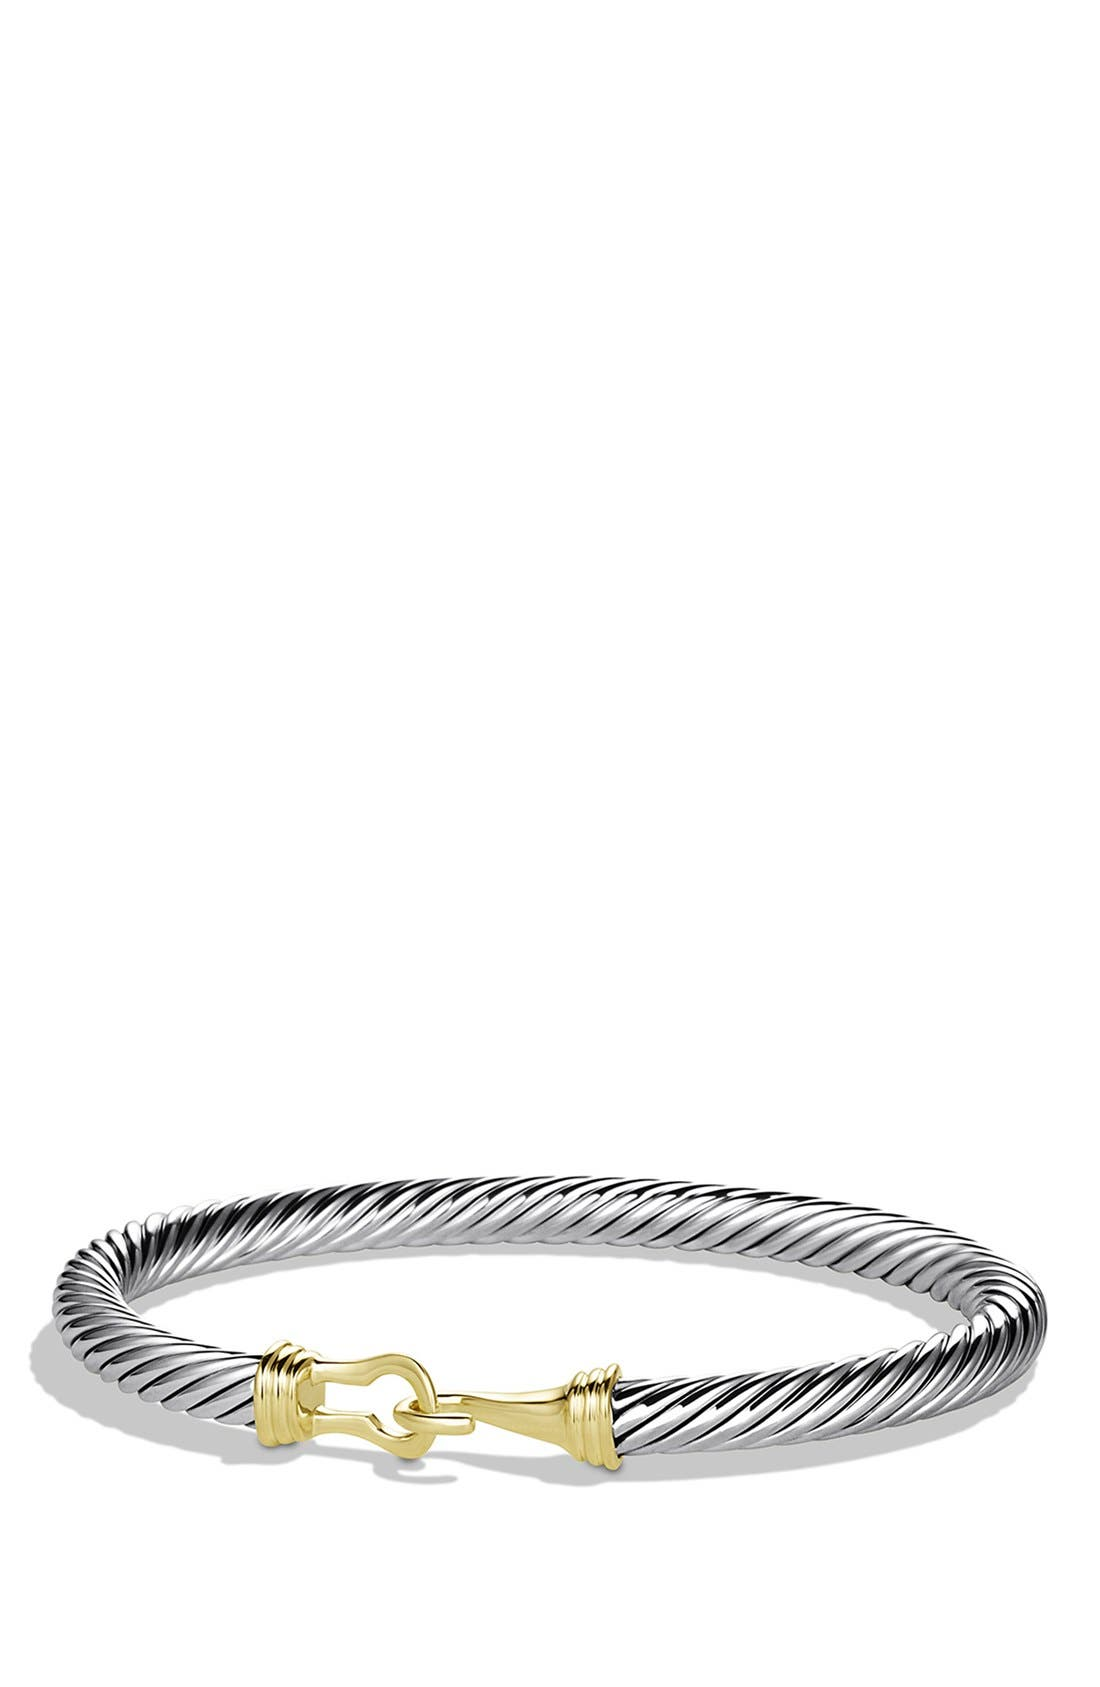 Main Image - David Yurman 'Cable Buckle' Bracelet with Gold